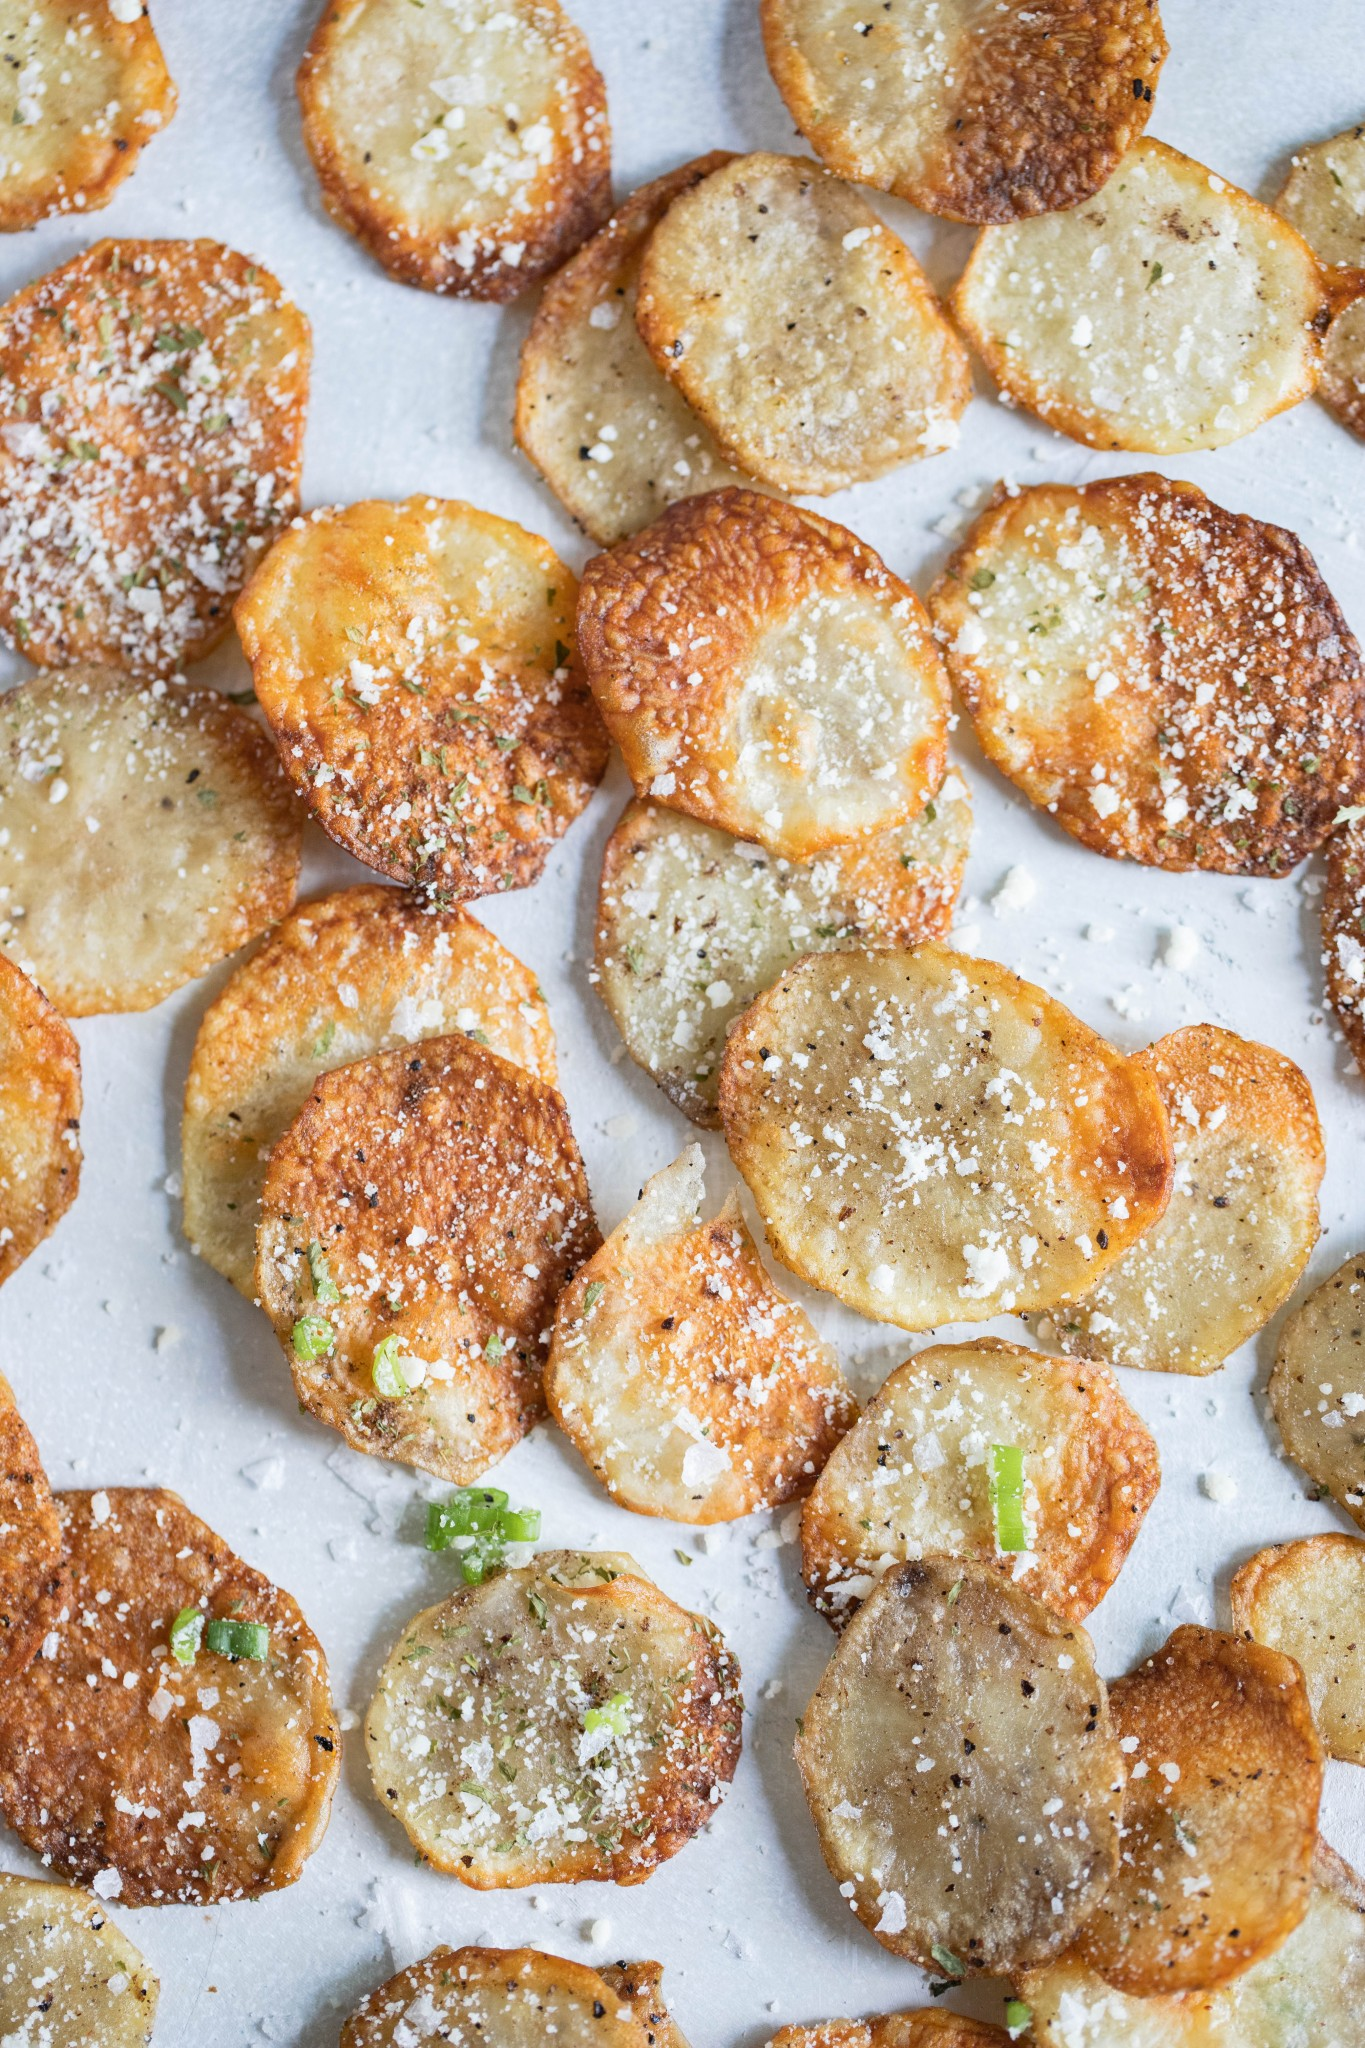 homemade potato chips in air fryer sprinkled with truffle seasoning and parmesan cheese